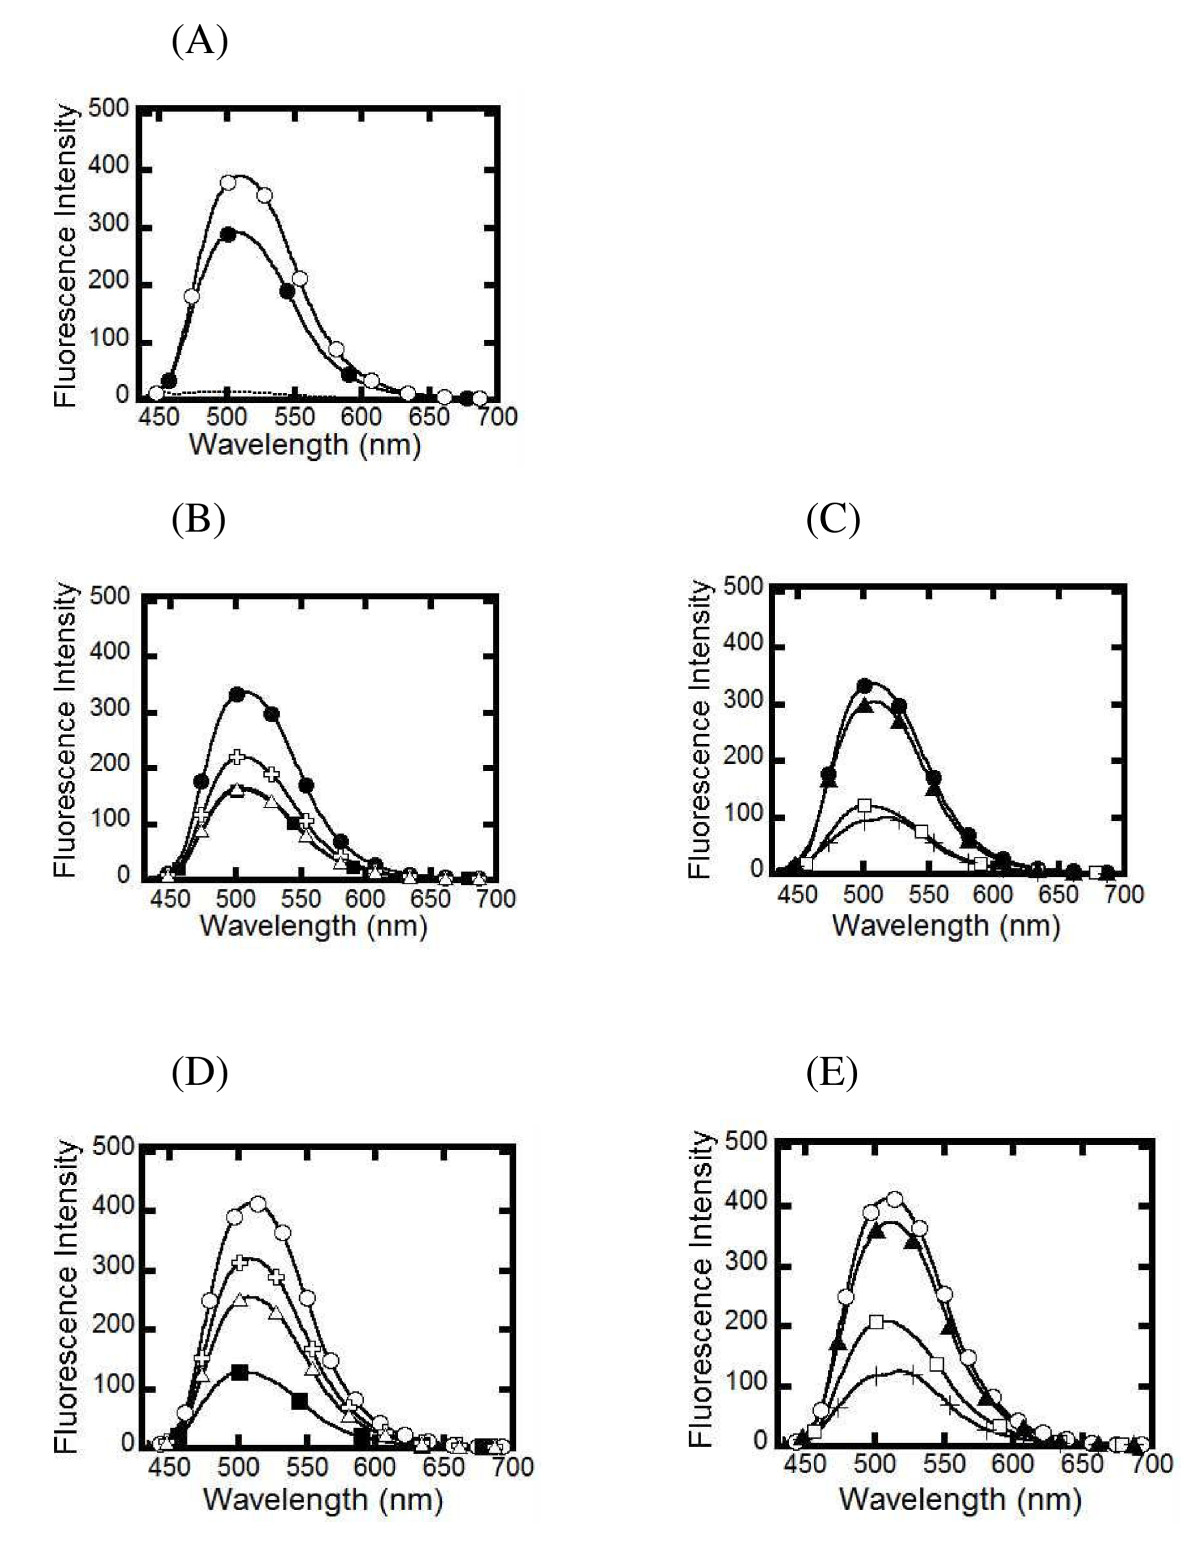 https://static-content.springer.com/image/art%3A10.1186%2F1475-2875-11-194/MediaObjects/12936_2012_Article_2487_Fig5_HTML.jpg